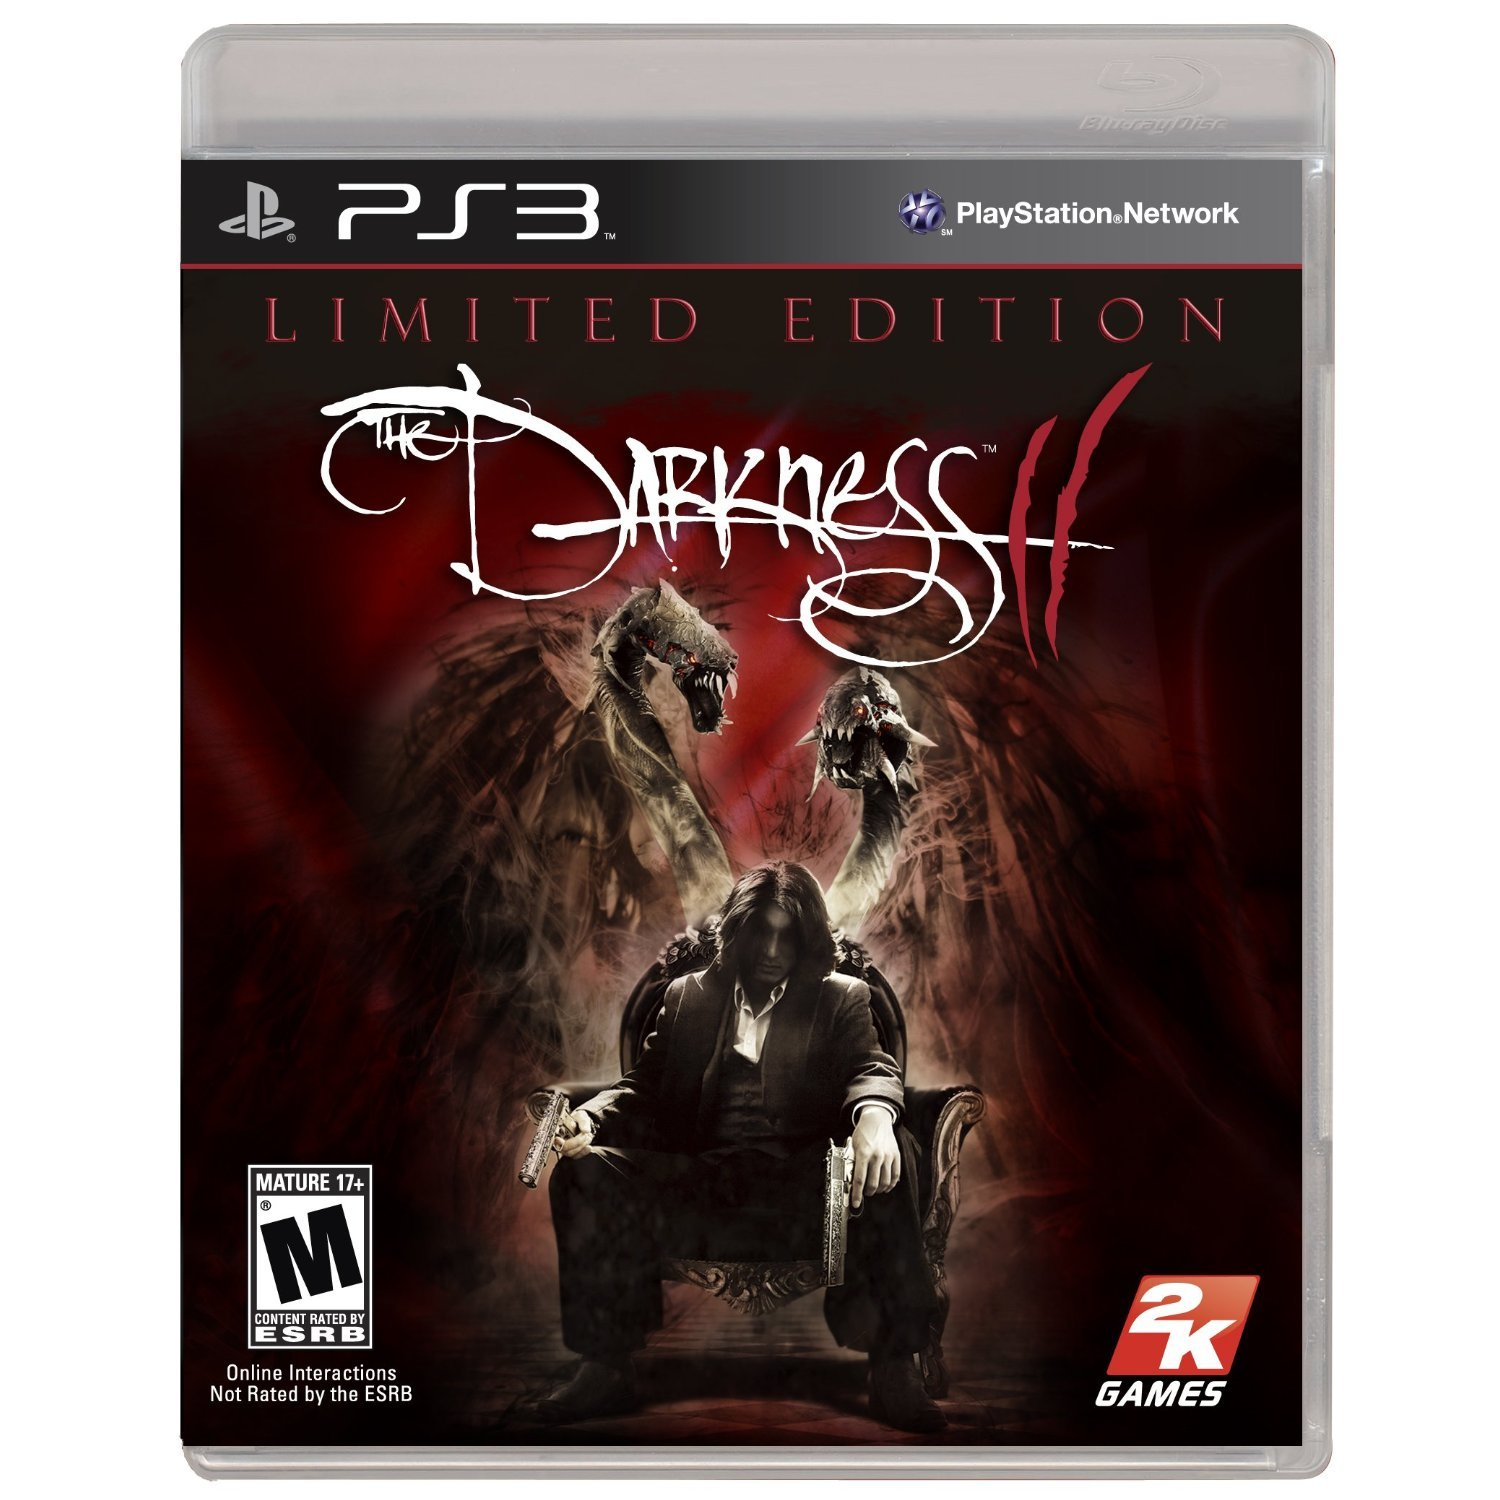 The Darkness 2 - Limited Edition PS3 [USA/CAN] bound by darkness